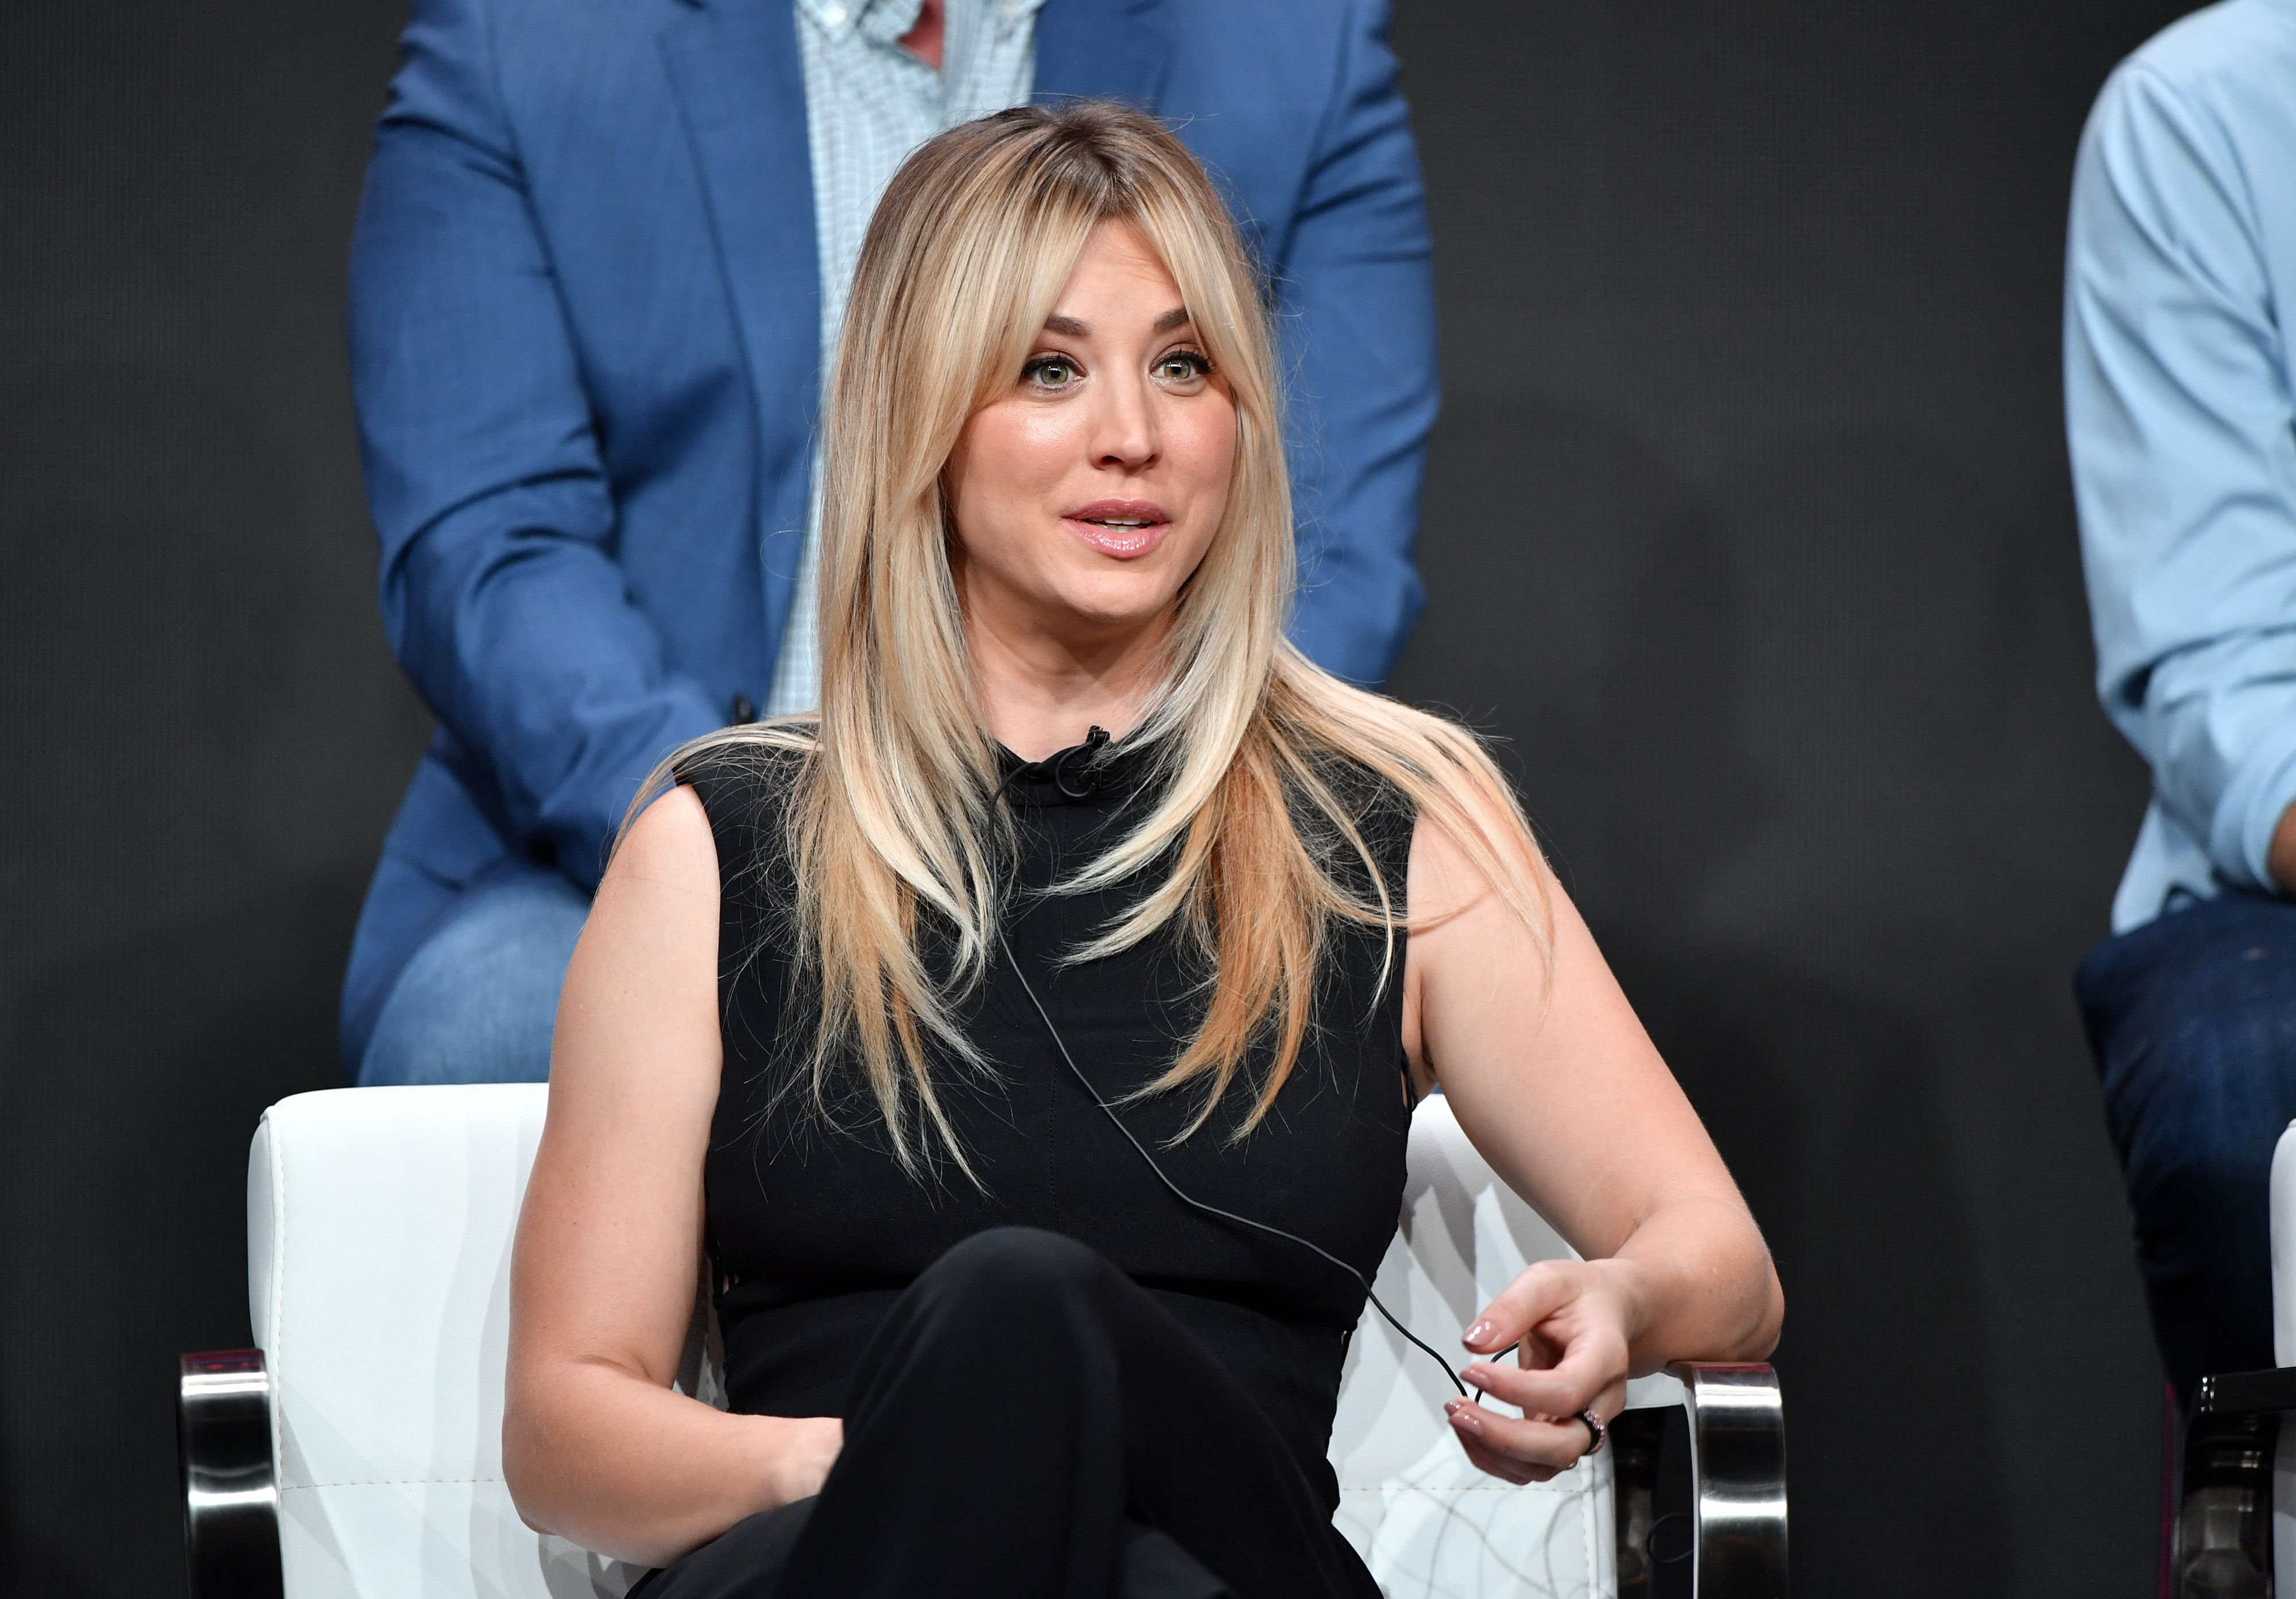 Kaley Cuoco at the DC Universe panel at the 2019 Summer TCA Press Tour on July 23, 2019 | Photo: Getty Images